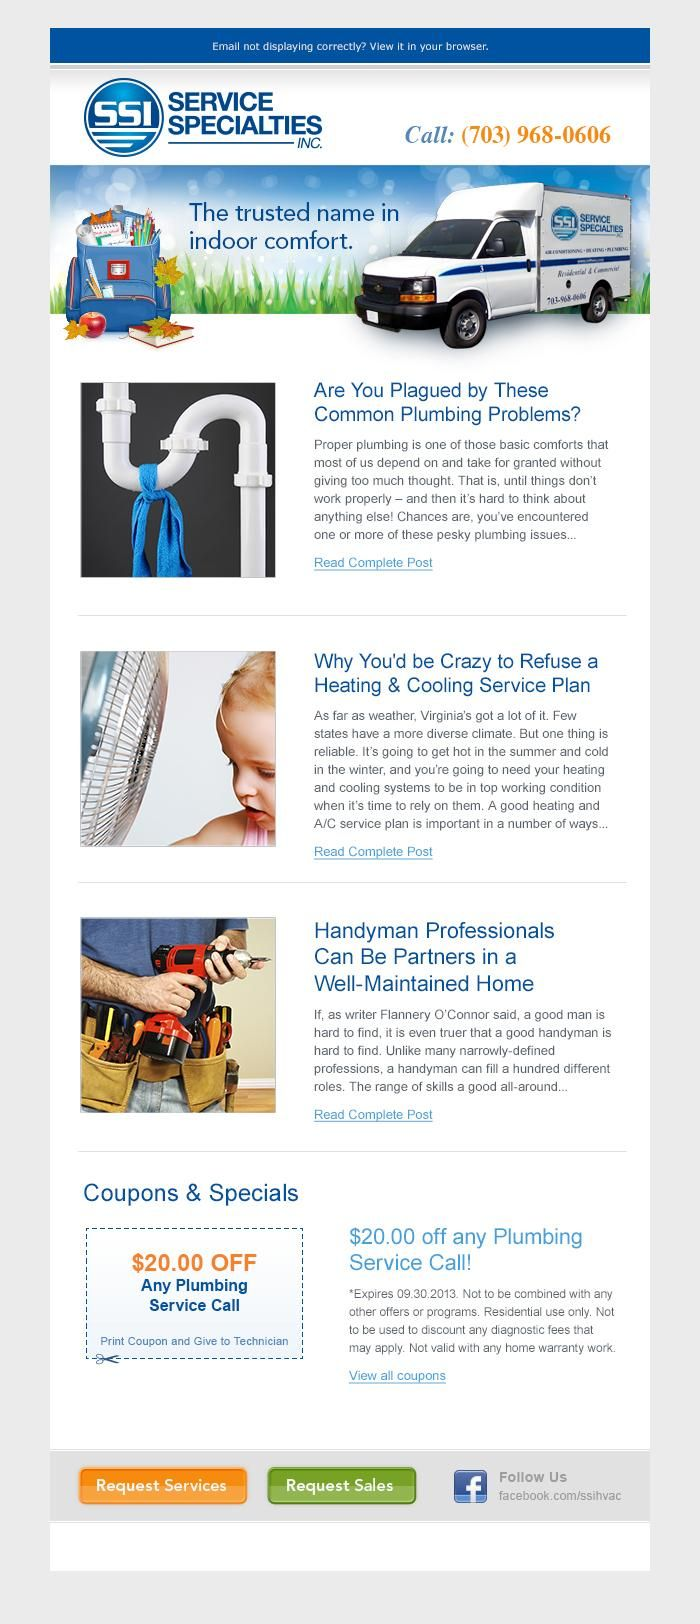 Email newsletter created for use by a local HVAC and plumbing contractor.